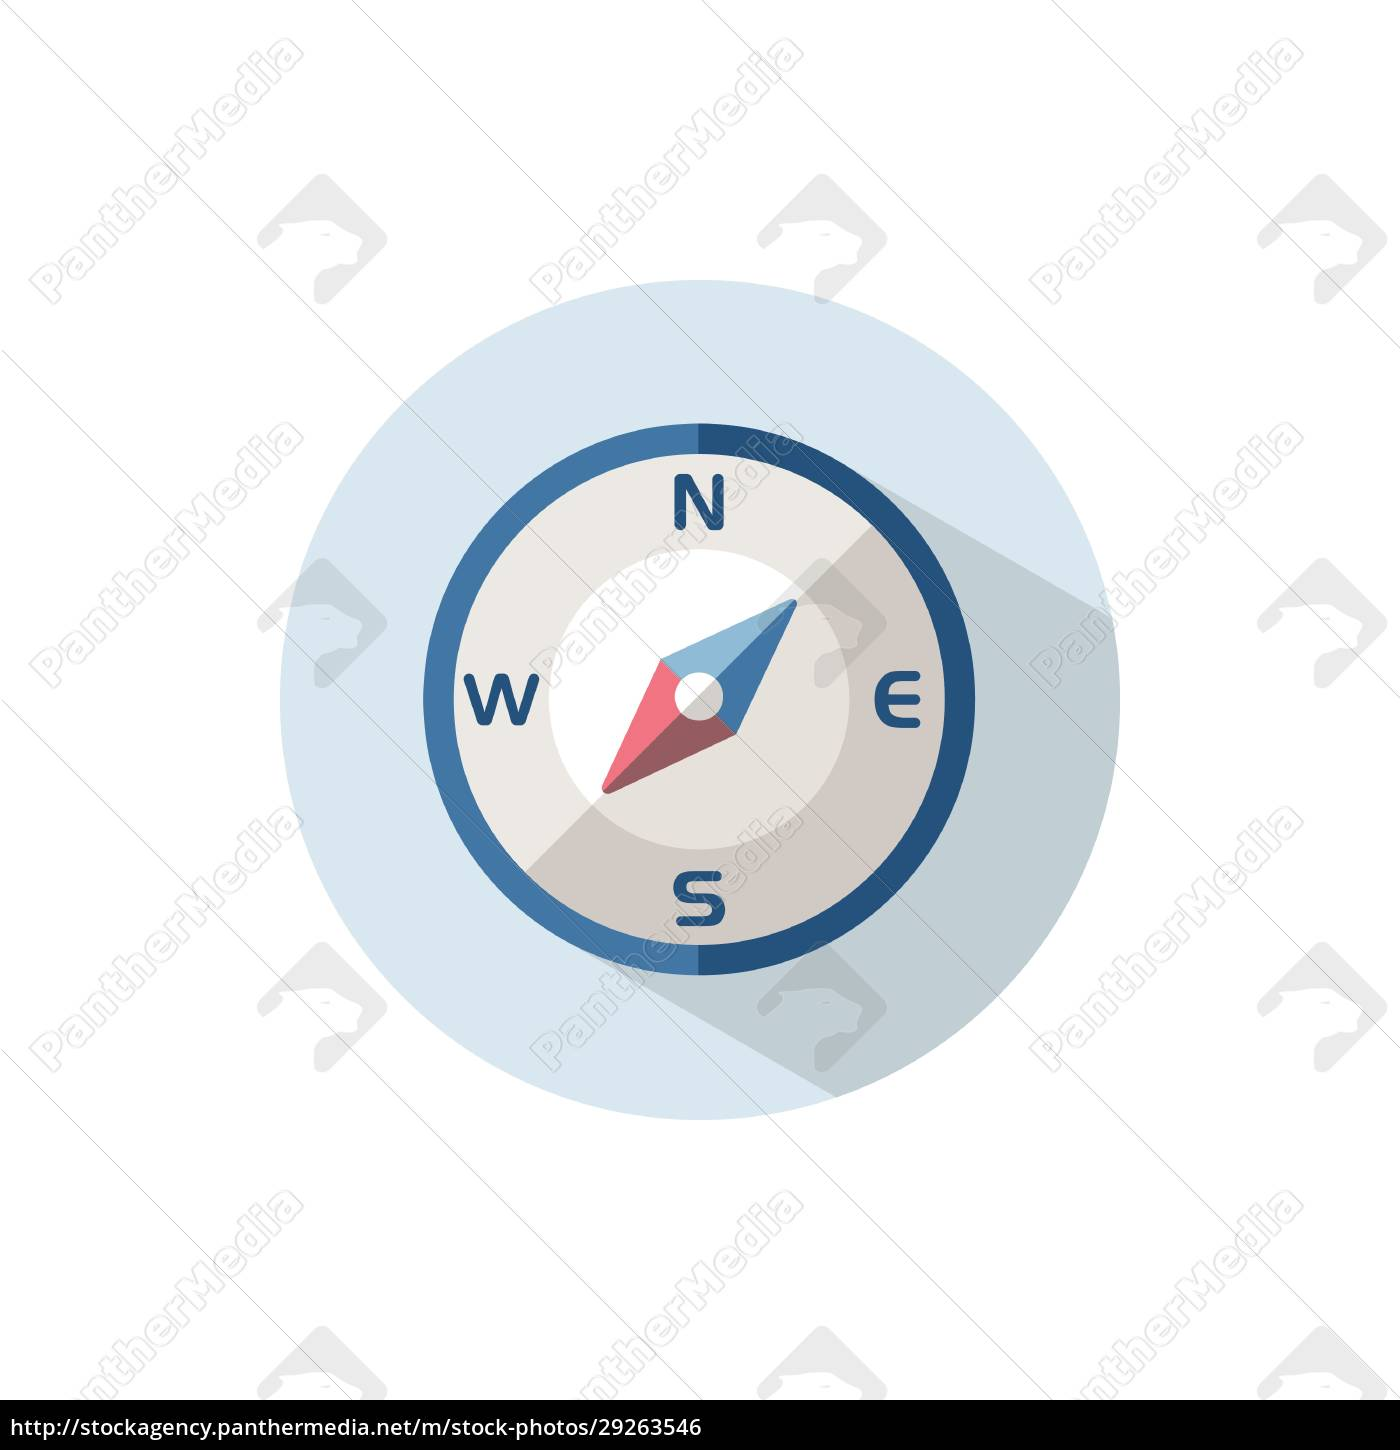 compass, south, west, direction., flat, icon - 29263546